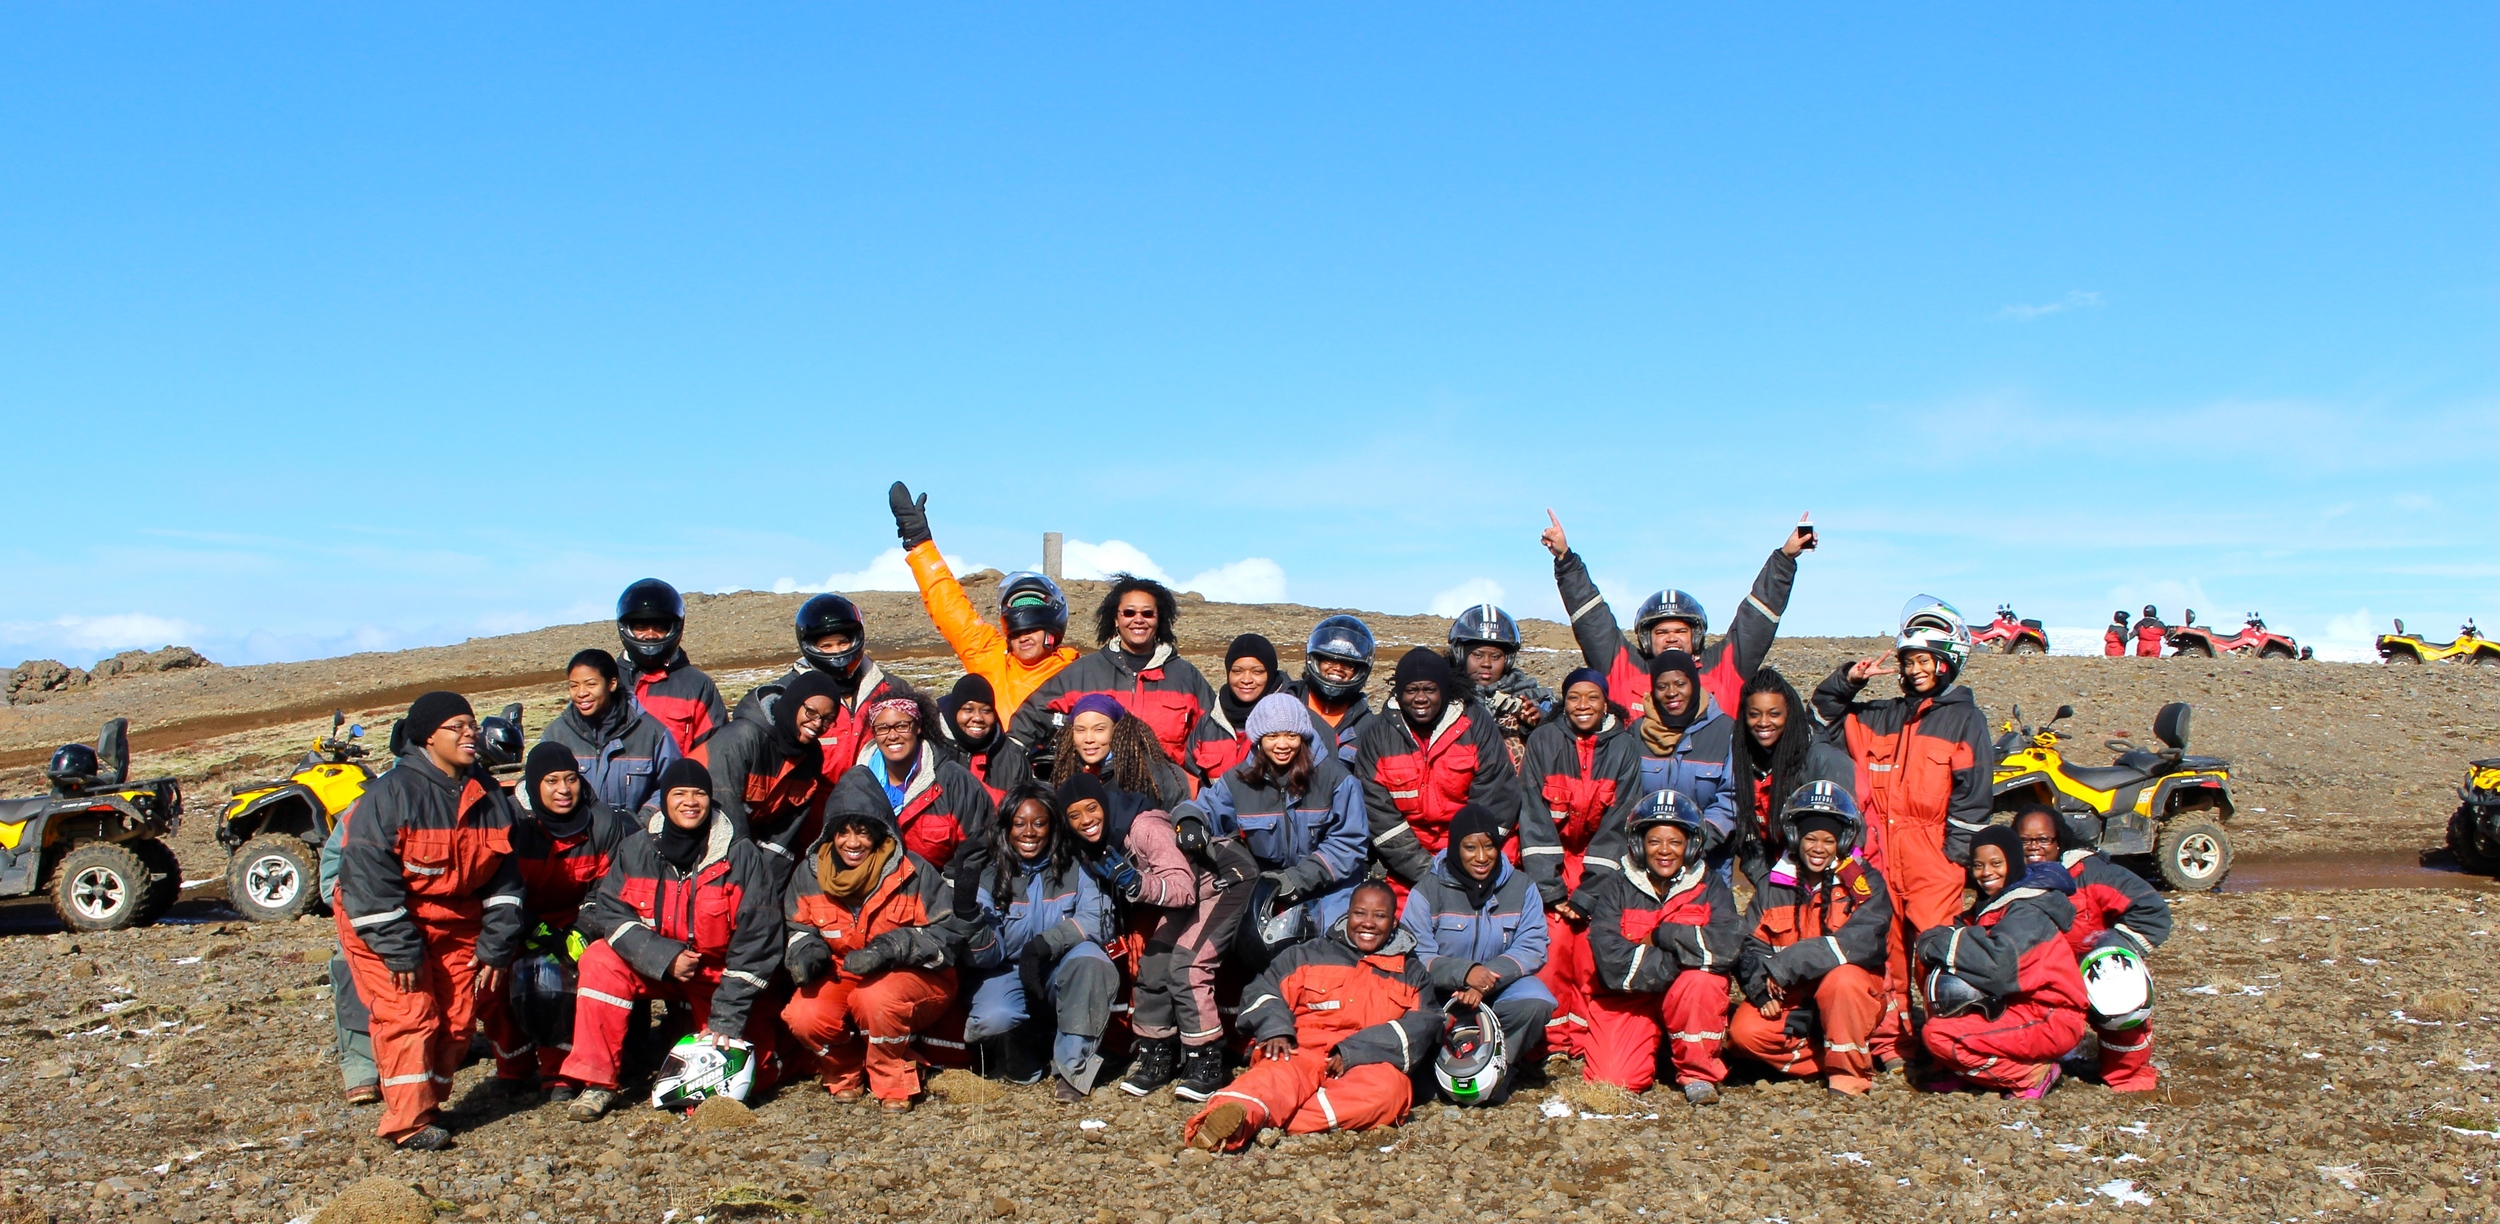 The group photo at the top of the mountain during the ATV mountain safari.